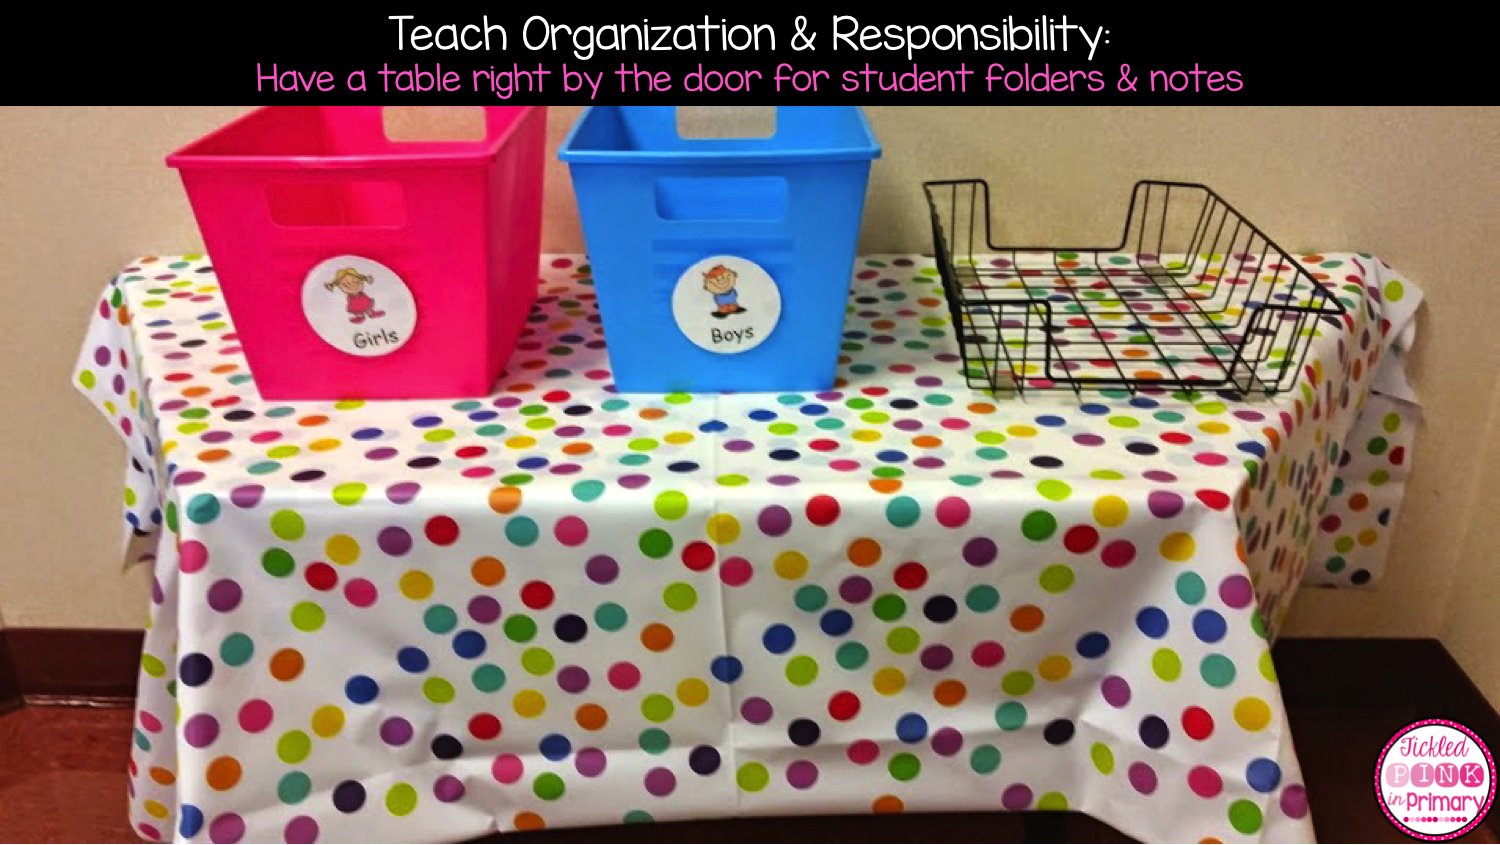 Teach Organization and Responsibility